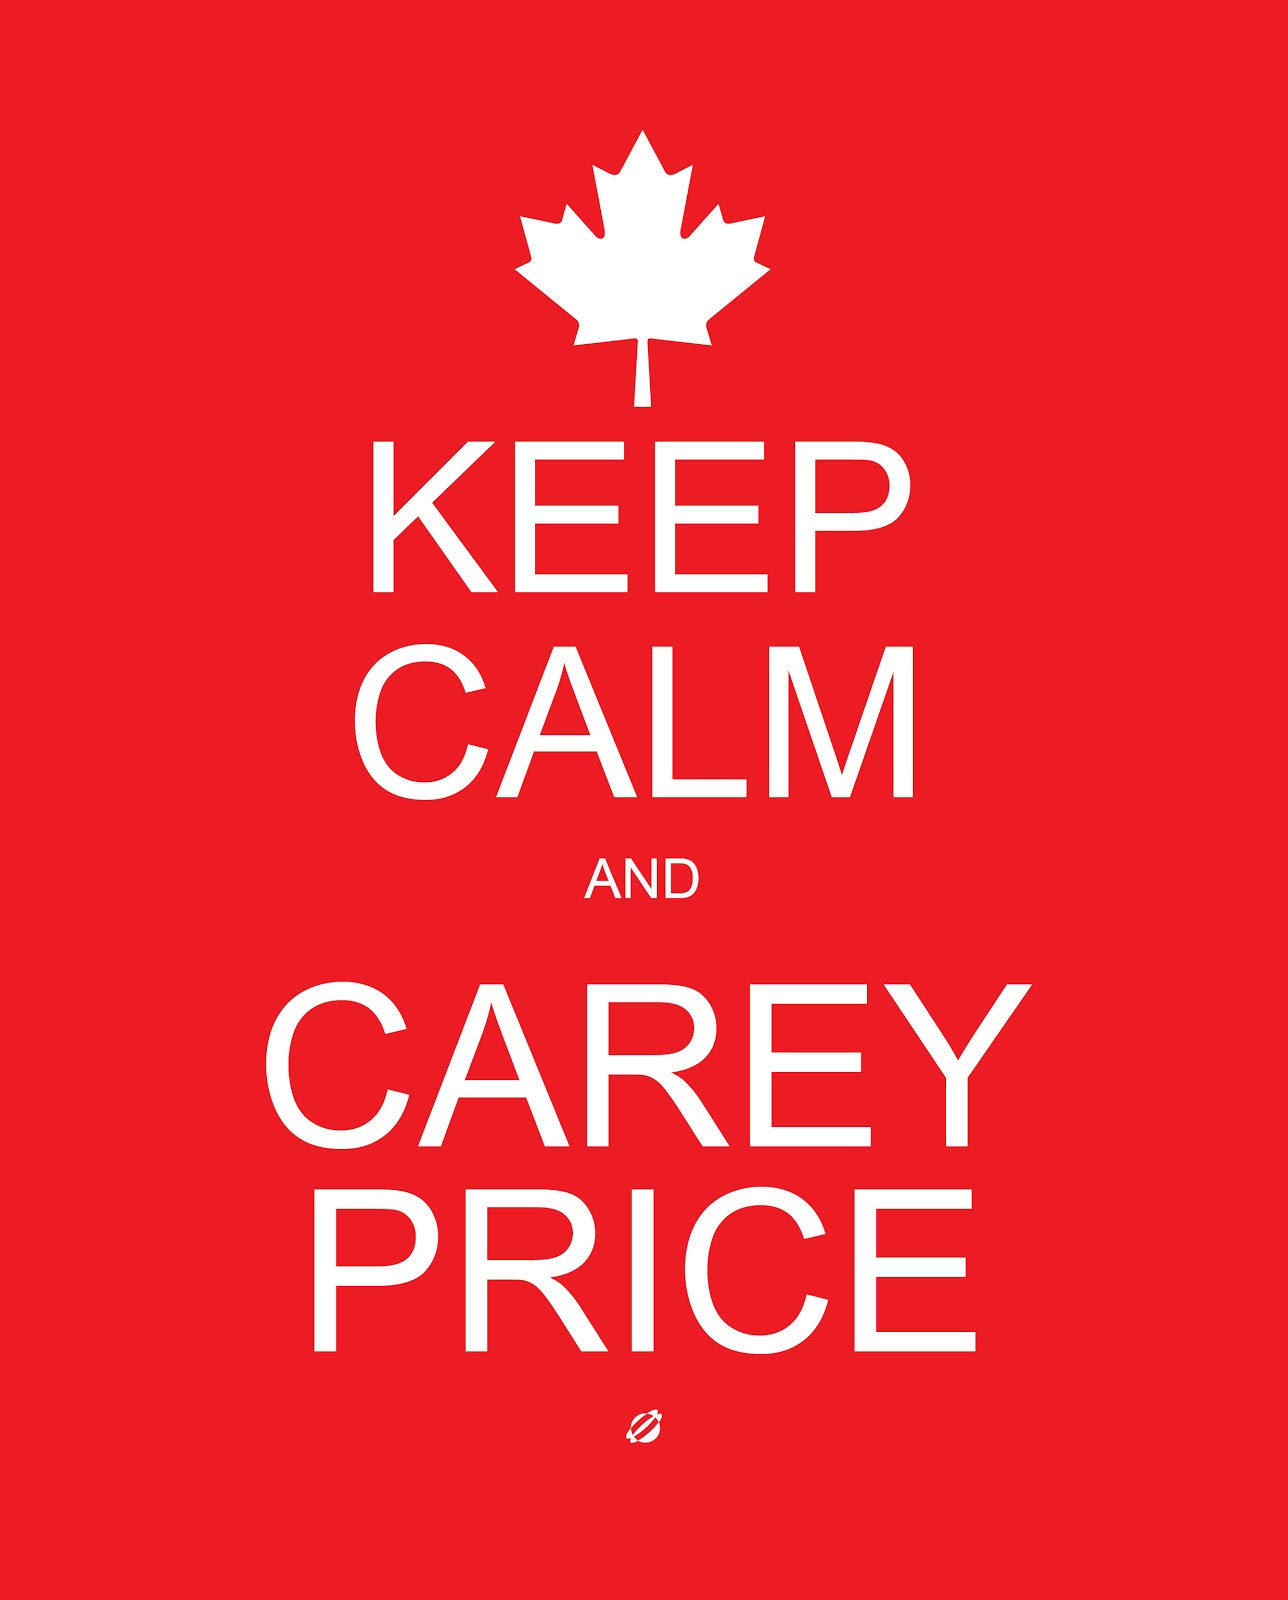 LostBumblebee ©2014 KEEP CALM AND CAREY PRICE FREE PRINTABLE